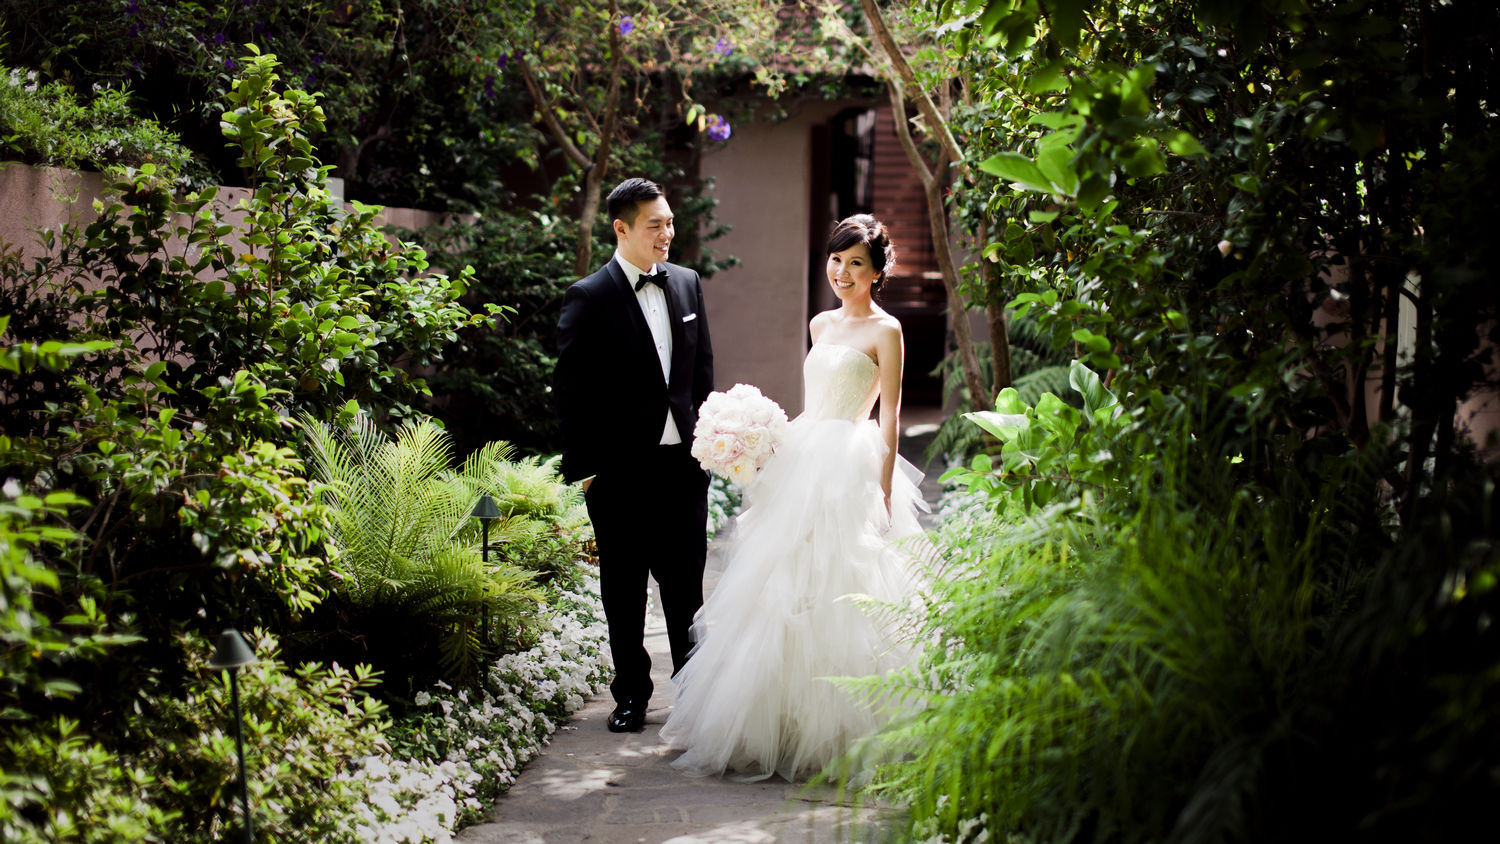 wedding-hotel-bel-air-ashley-henry-144.jpg